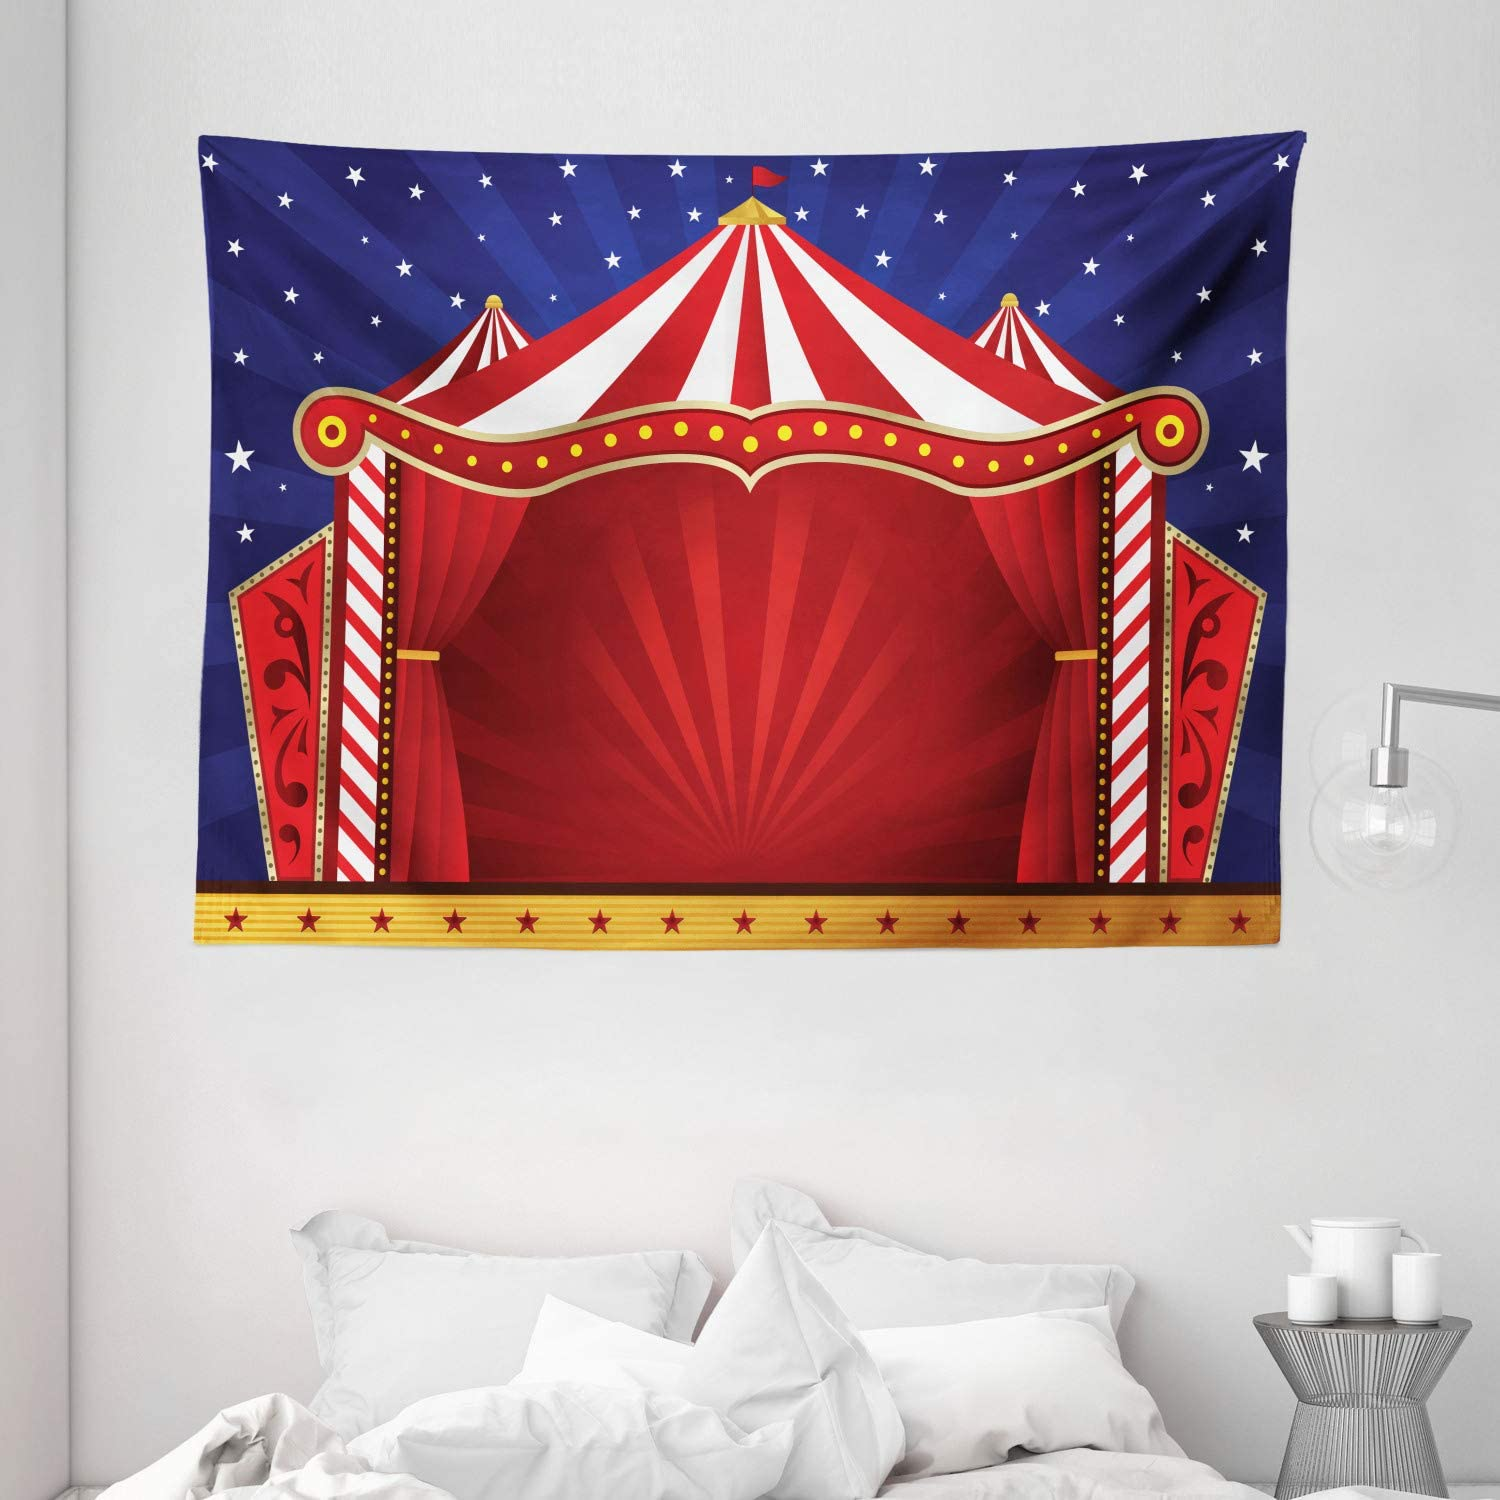 "Ambesonne Circus Tapestry, Canvas Tent Circus Stage Performing Theater Jokes Clown Cheerful Night Theme, Wide Wall Hanging for Bedroom Living Room Dorm, 80"" X 60"", Blue Vermilion"